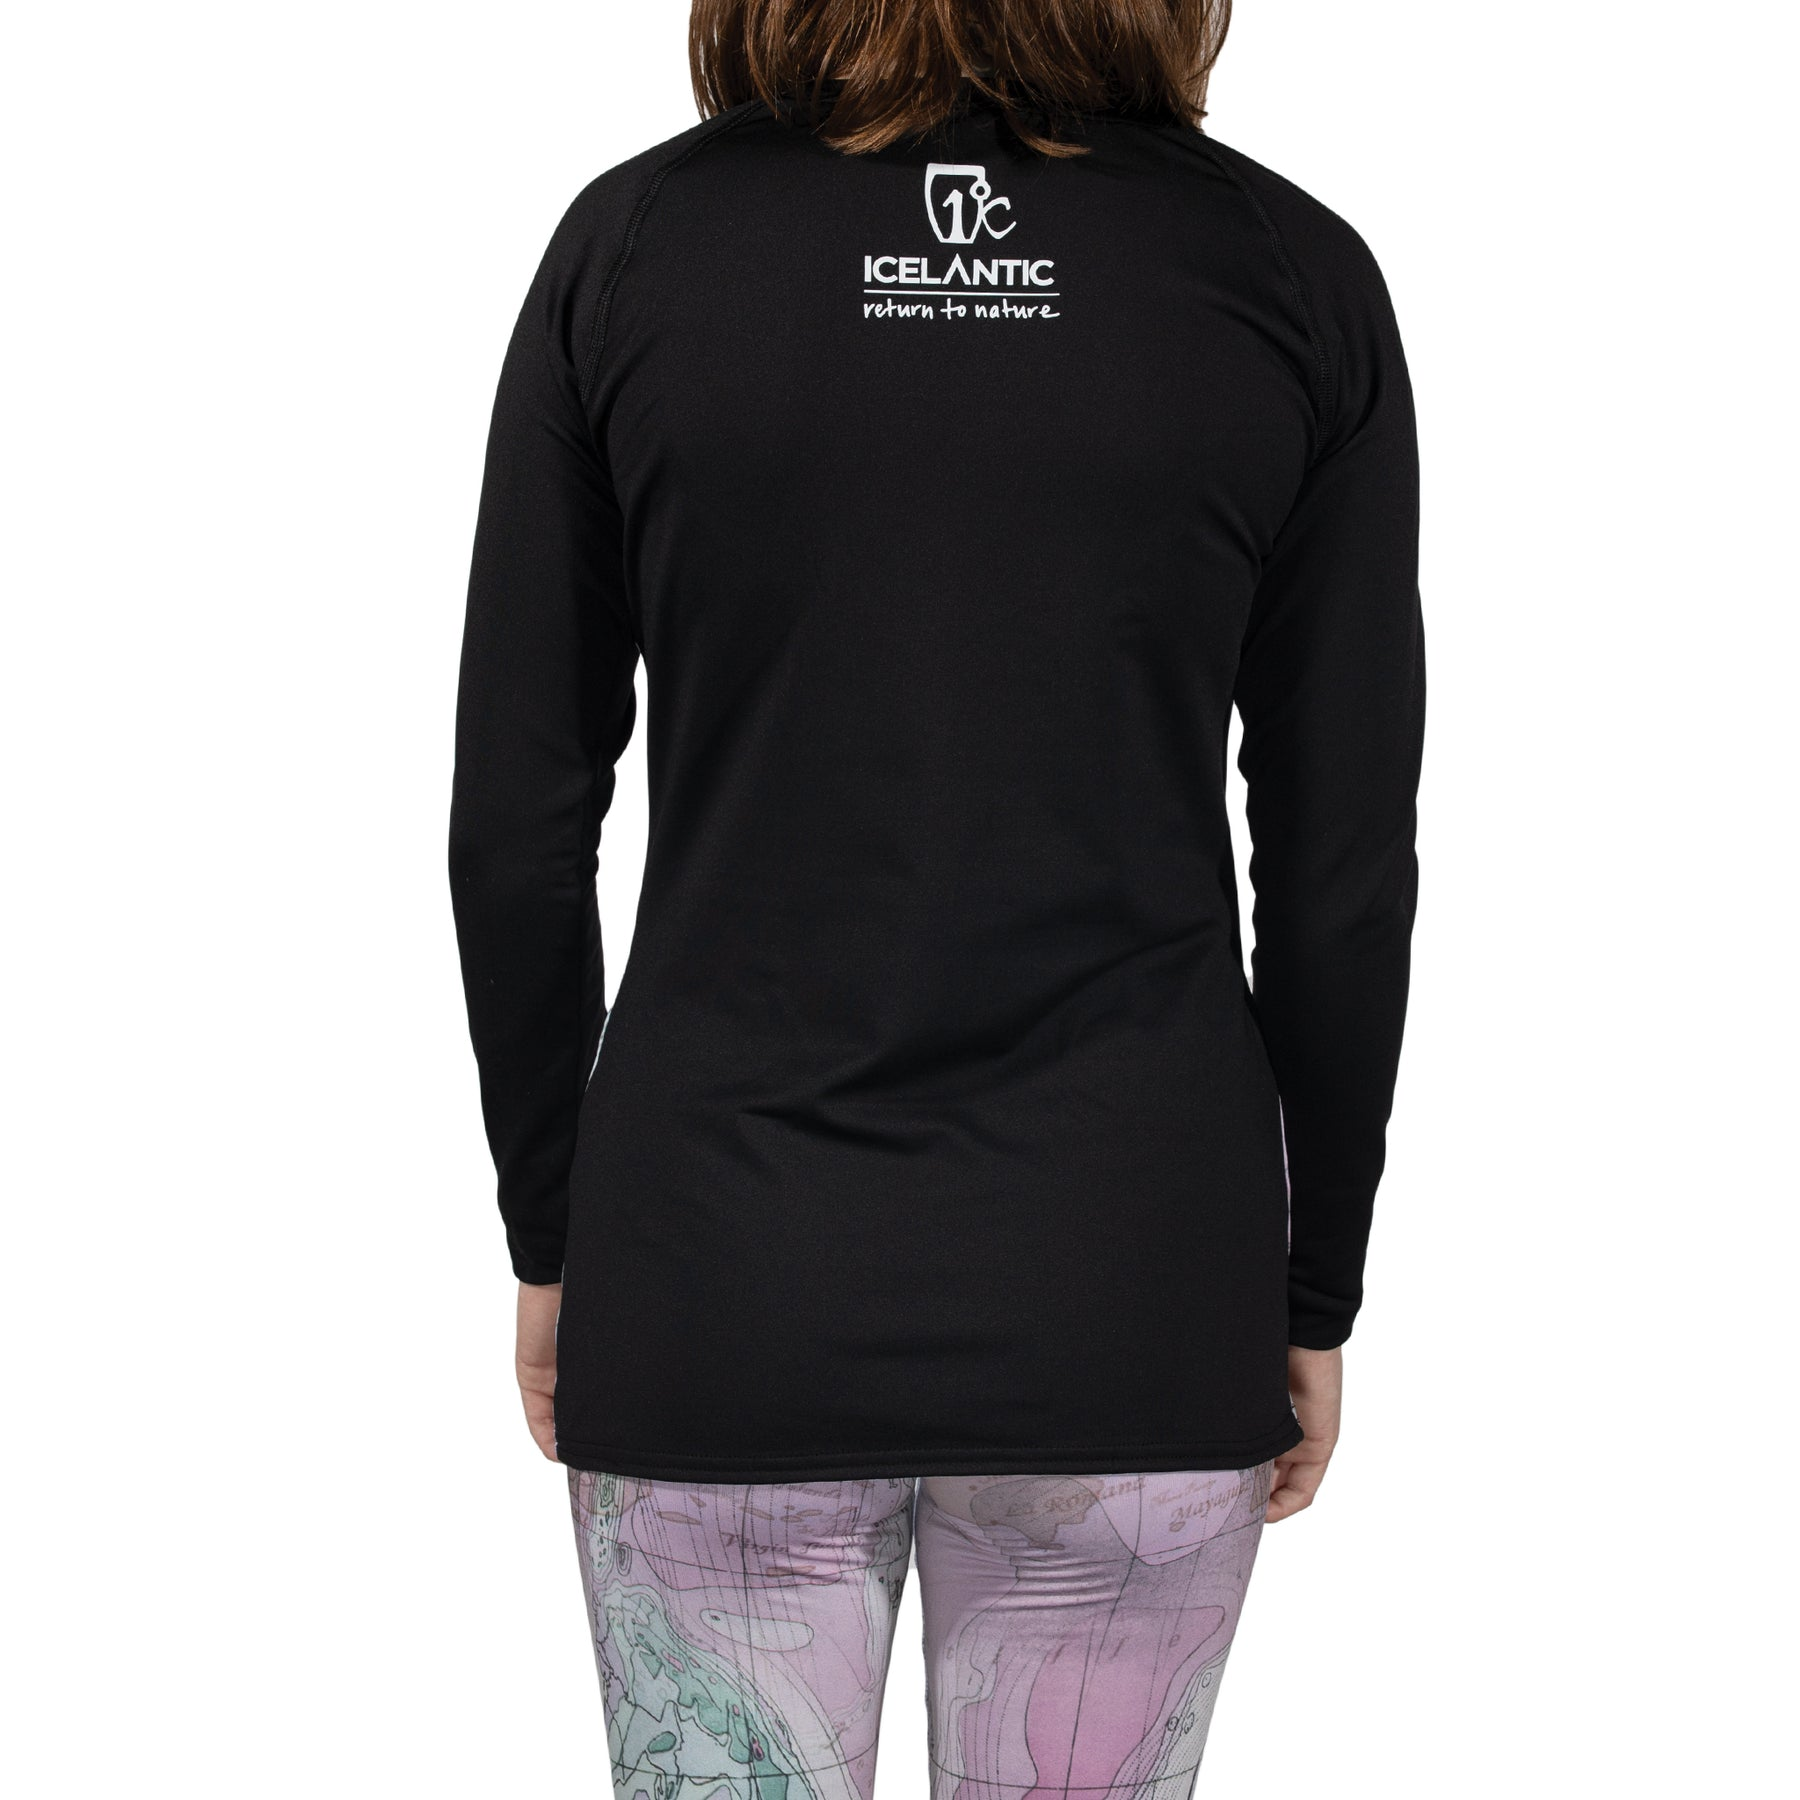 20/21 Women's Baselayer Top